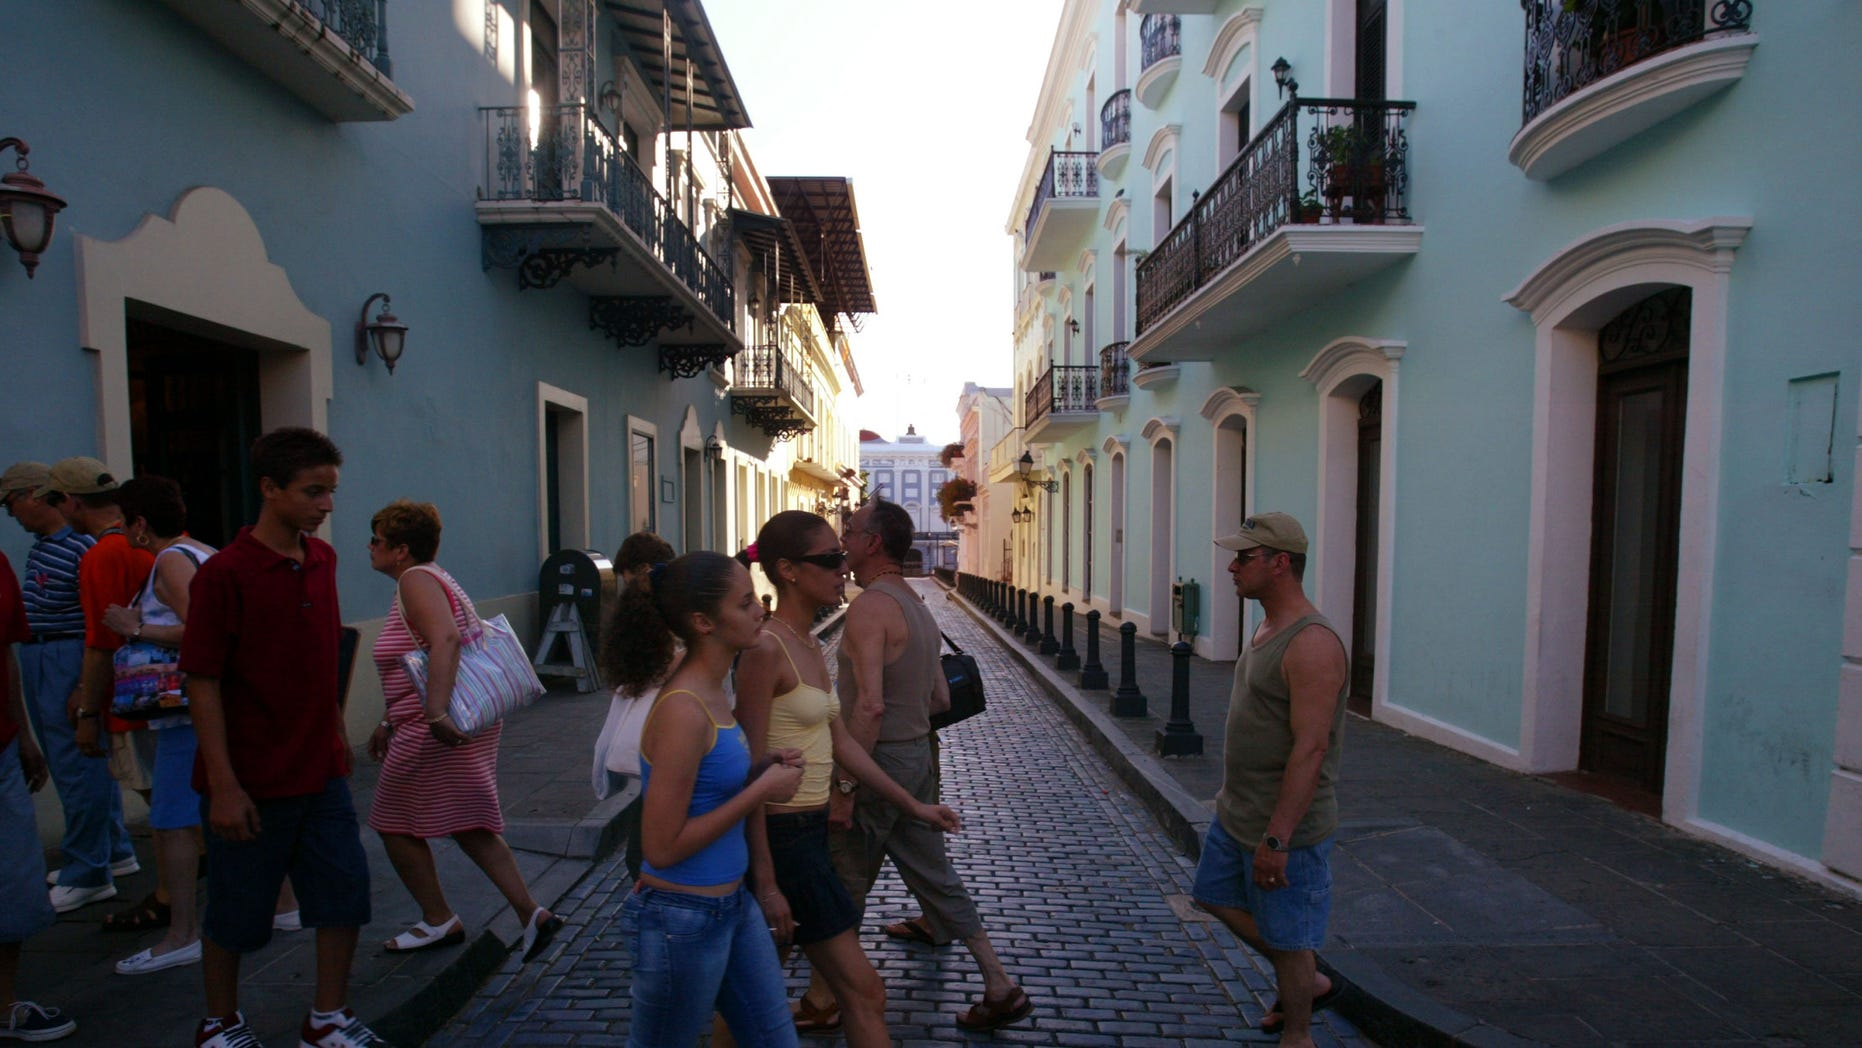 SAN JUAN, PUERTO RICO- APRIL 25: Visitors walk past colorful homes that line the cobblestoned streets April 25, 2004 in Old San Juan, the original capital city of San Juan, Puerto Rico. The old city is a historic district of seven square blocks made up of ancient buildings and colonial homes, massive stone walls and vast fortifications, sunny parks and cobblestoned streets.  (Photo by Joe Raedle/Getty Images)